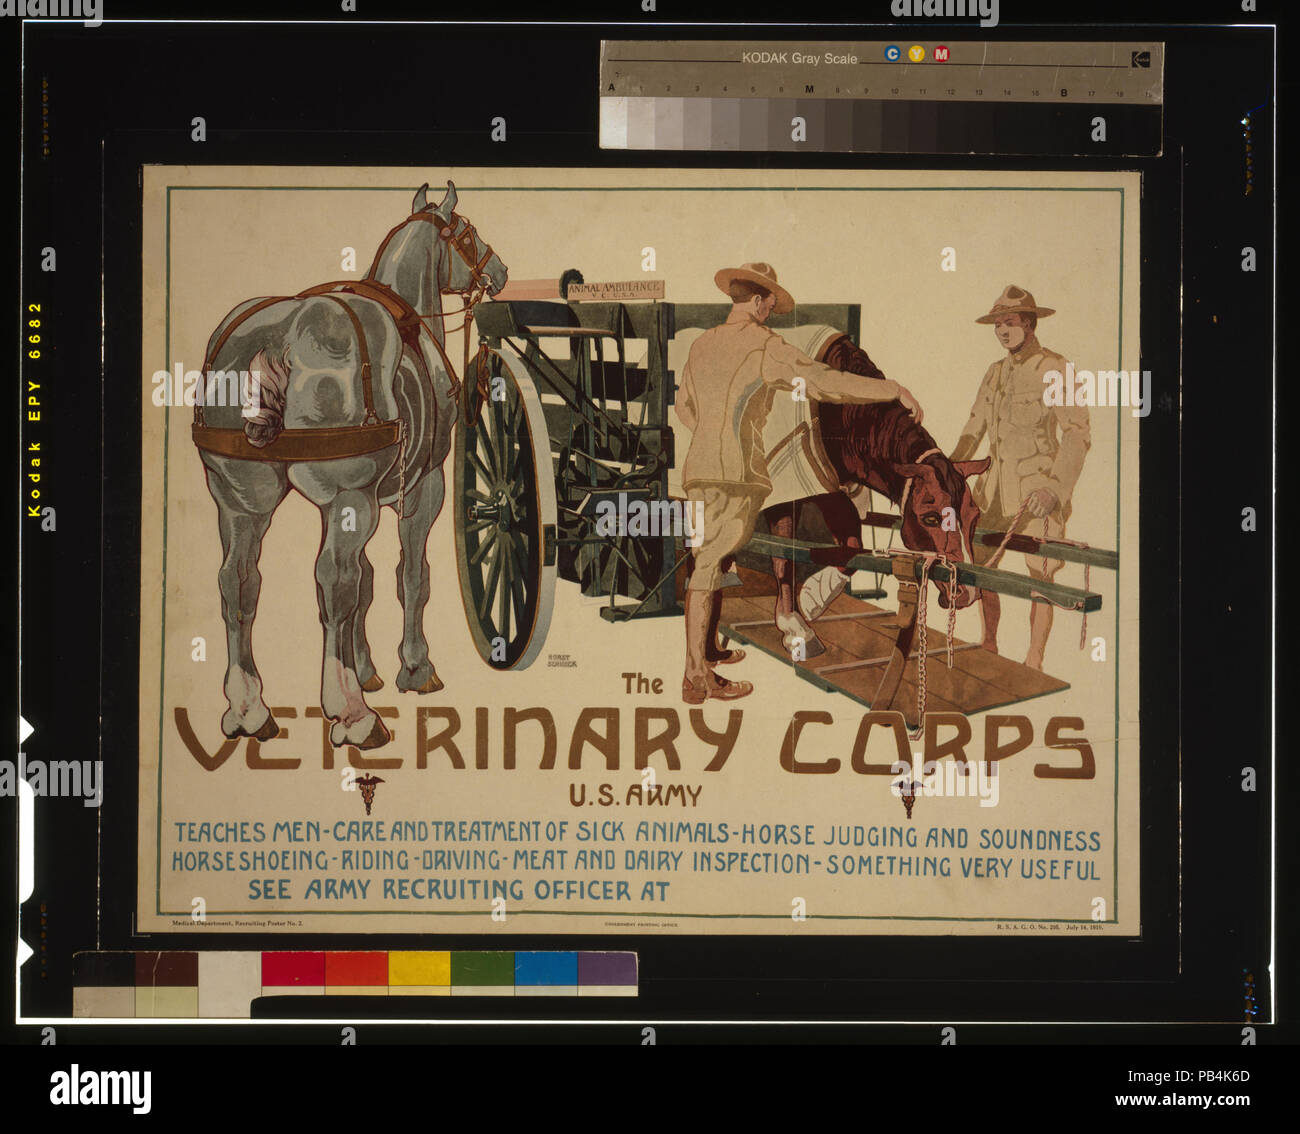 1710 The Veterinary Corps, U.S. Army, teaches men care and treatment of sick animals; horse judging and soundness; horseshoeing; riding; driving; meat and dairy inspection - something very useful LCCN2002722448 - Stock Image